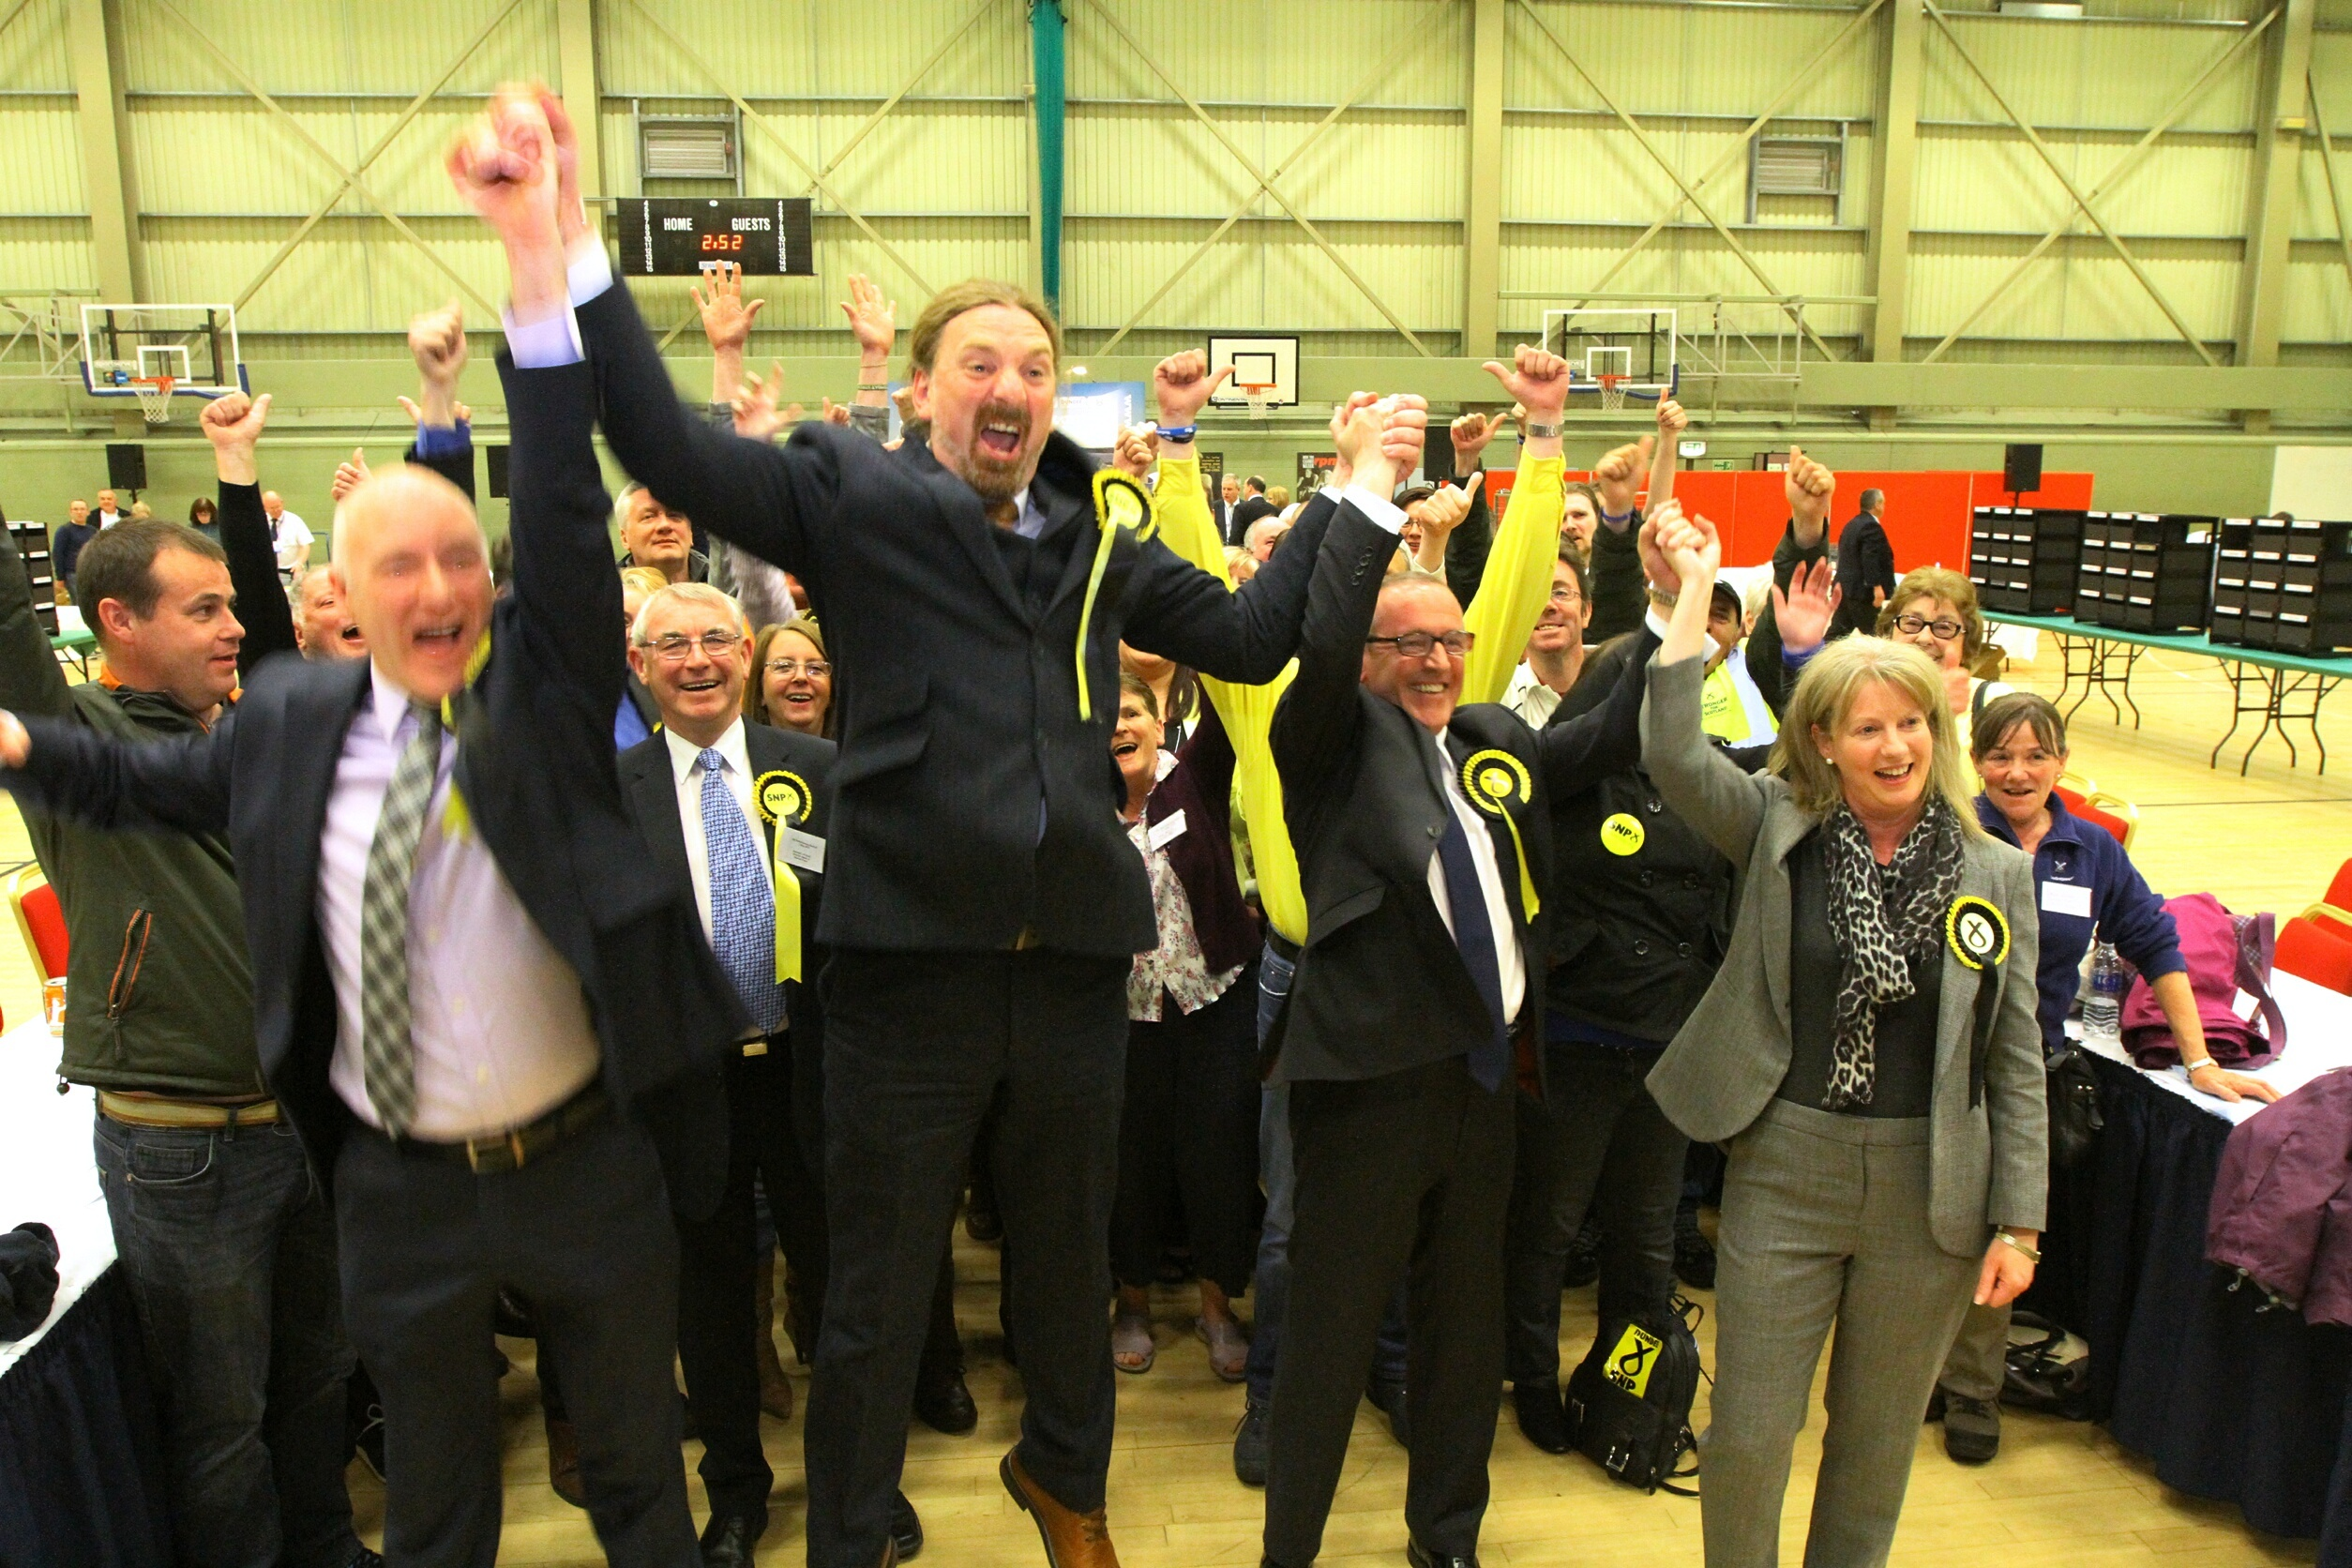 Chris Law and Stewart Hosie celebrate at the 2015 general election count.